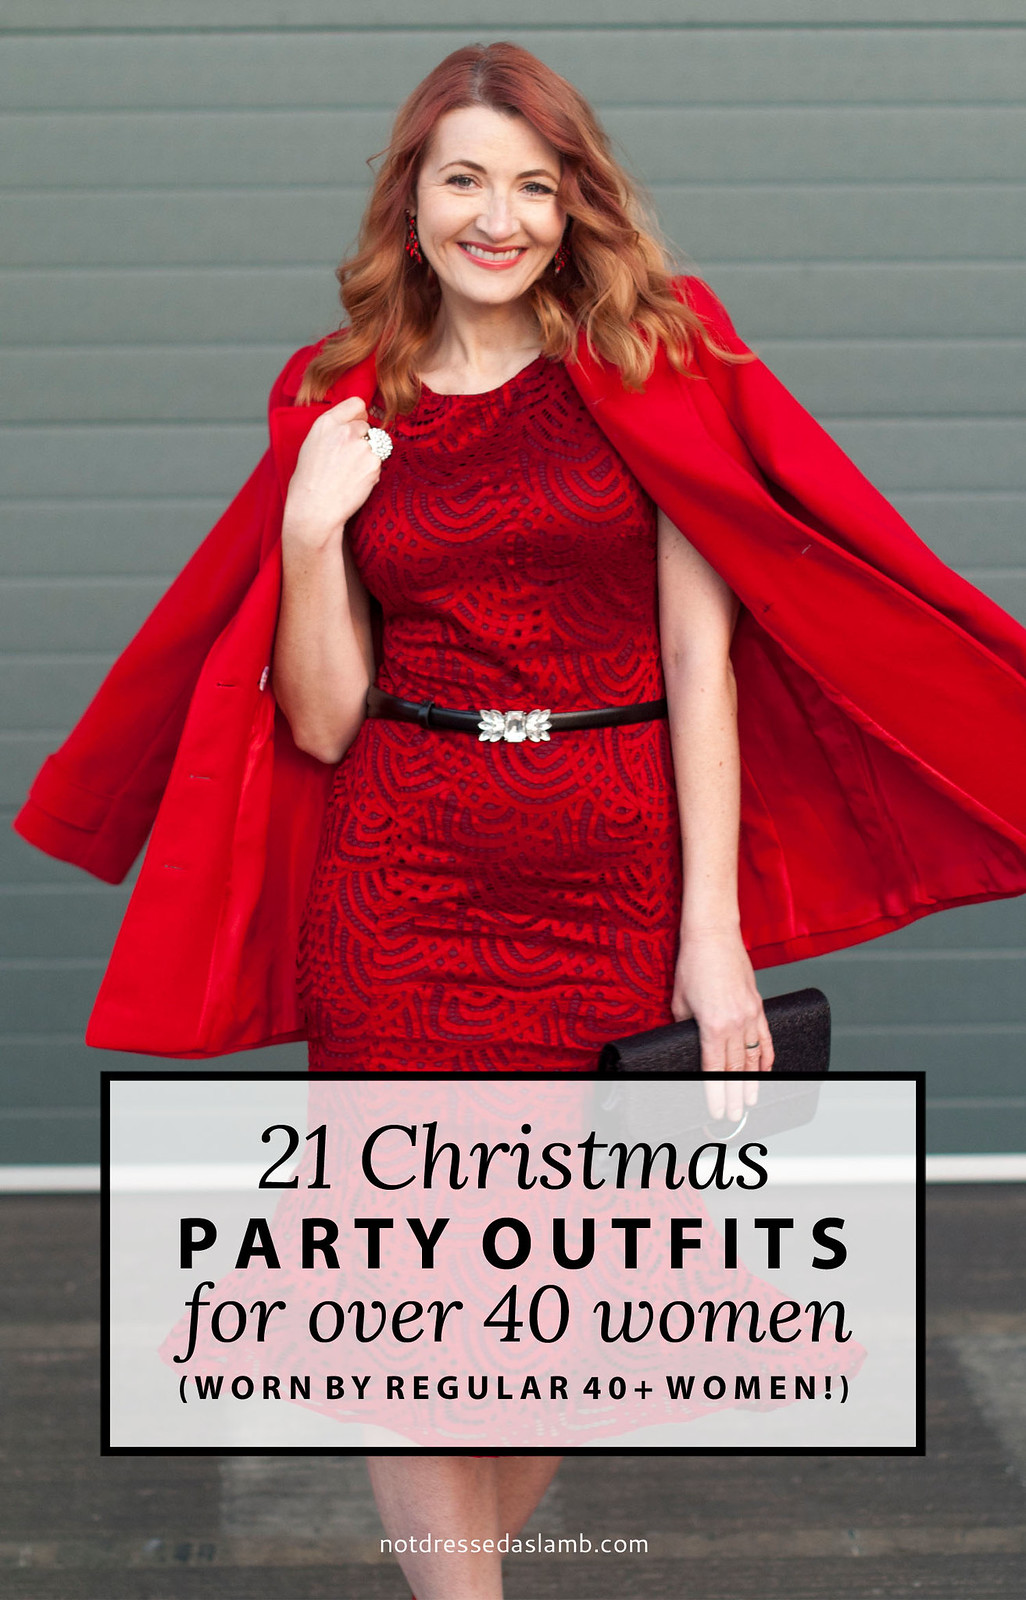 21 Christmas Party Outfits for Over 40 Women (worn by regular 40+ women)